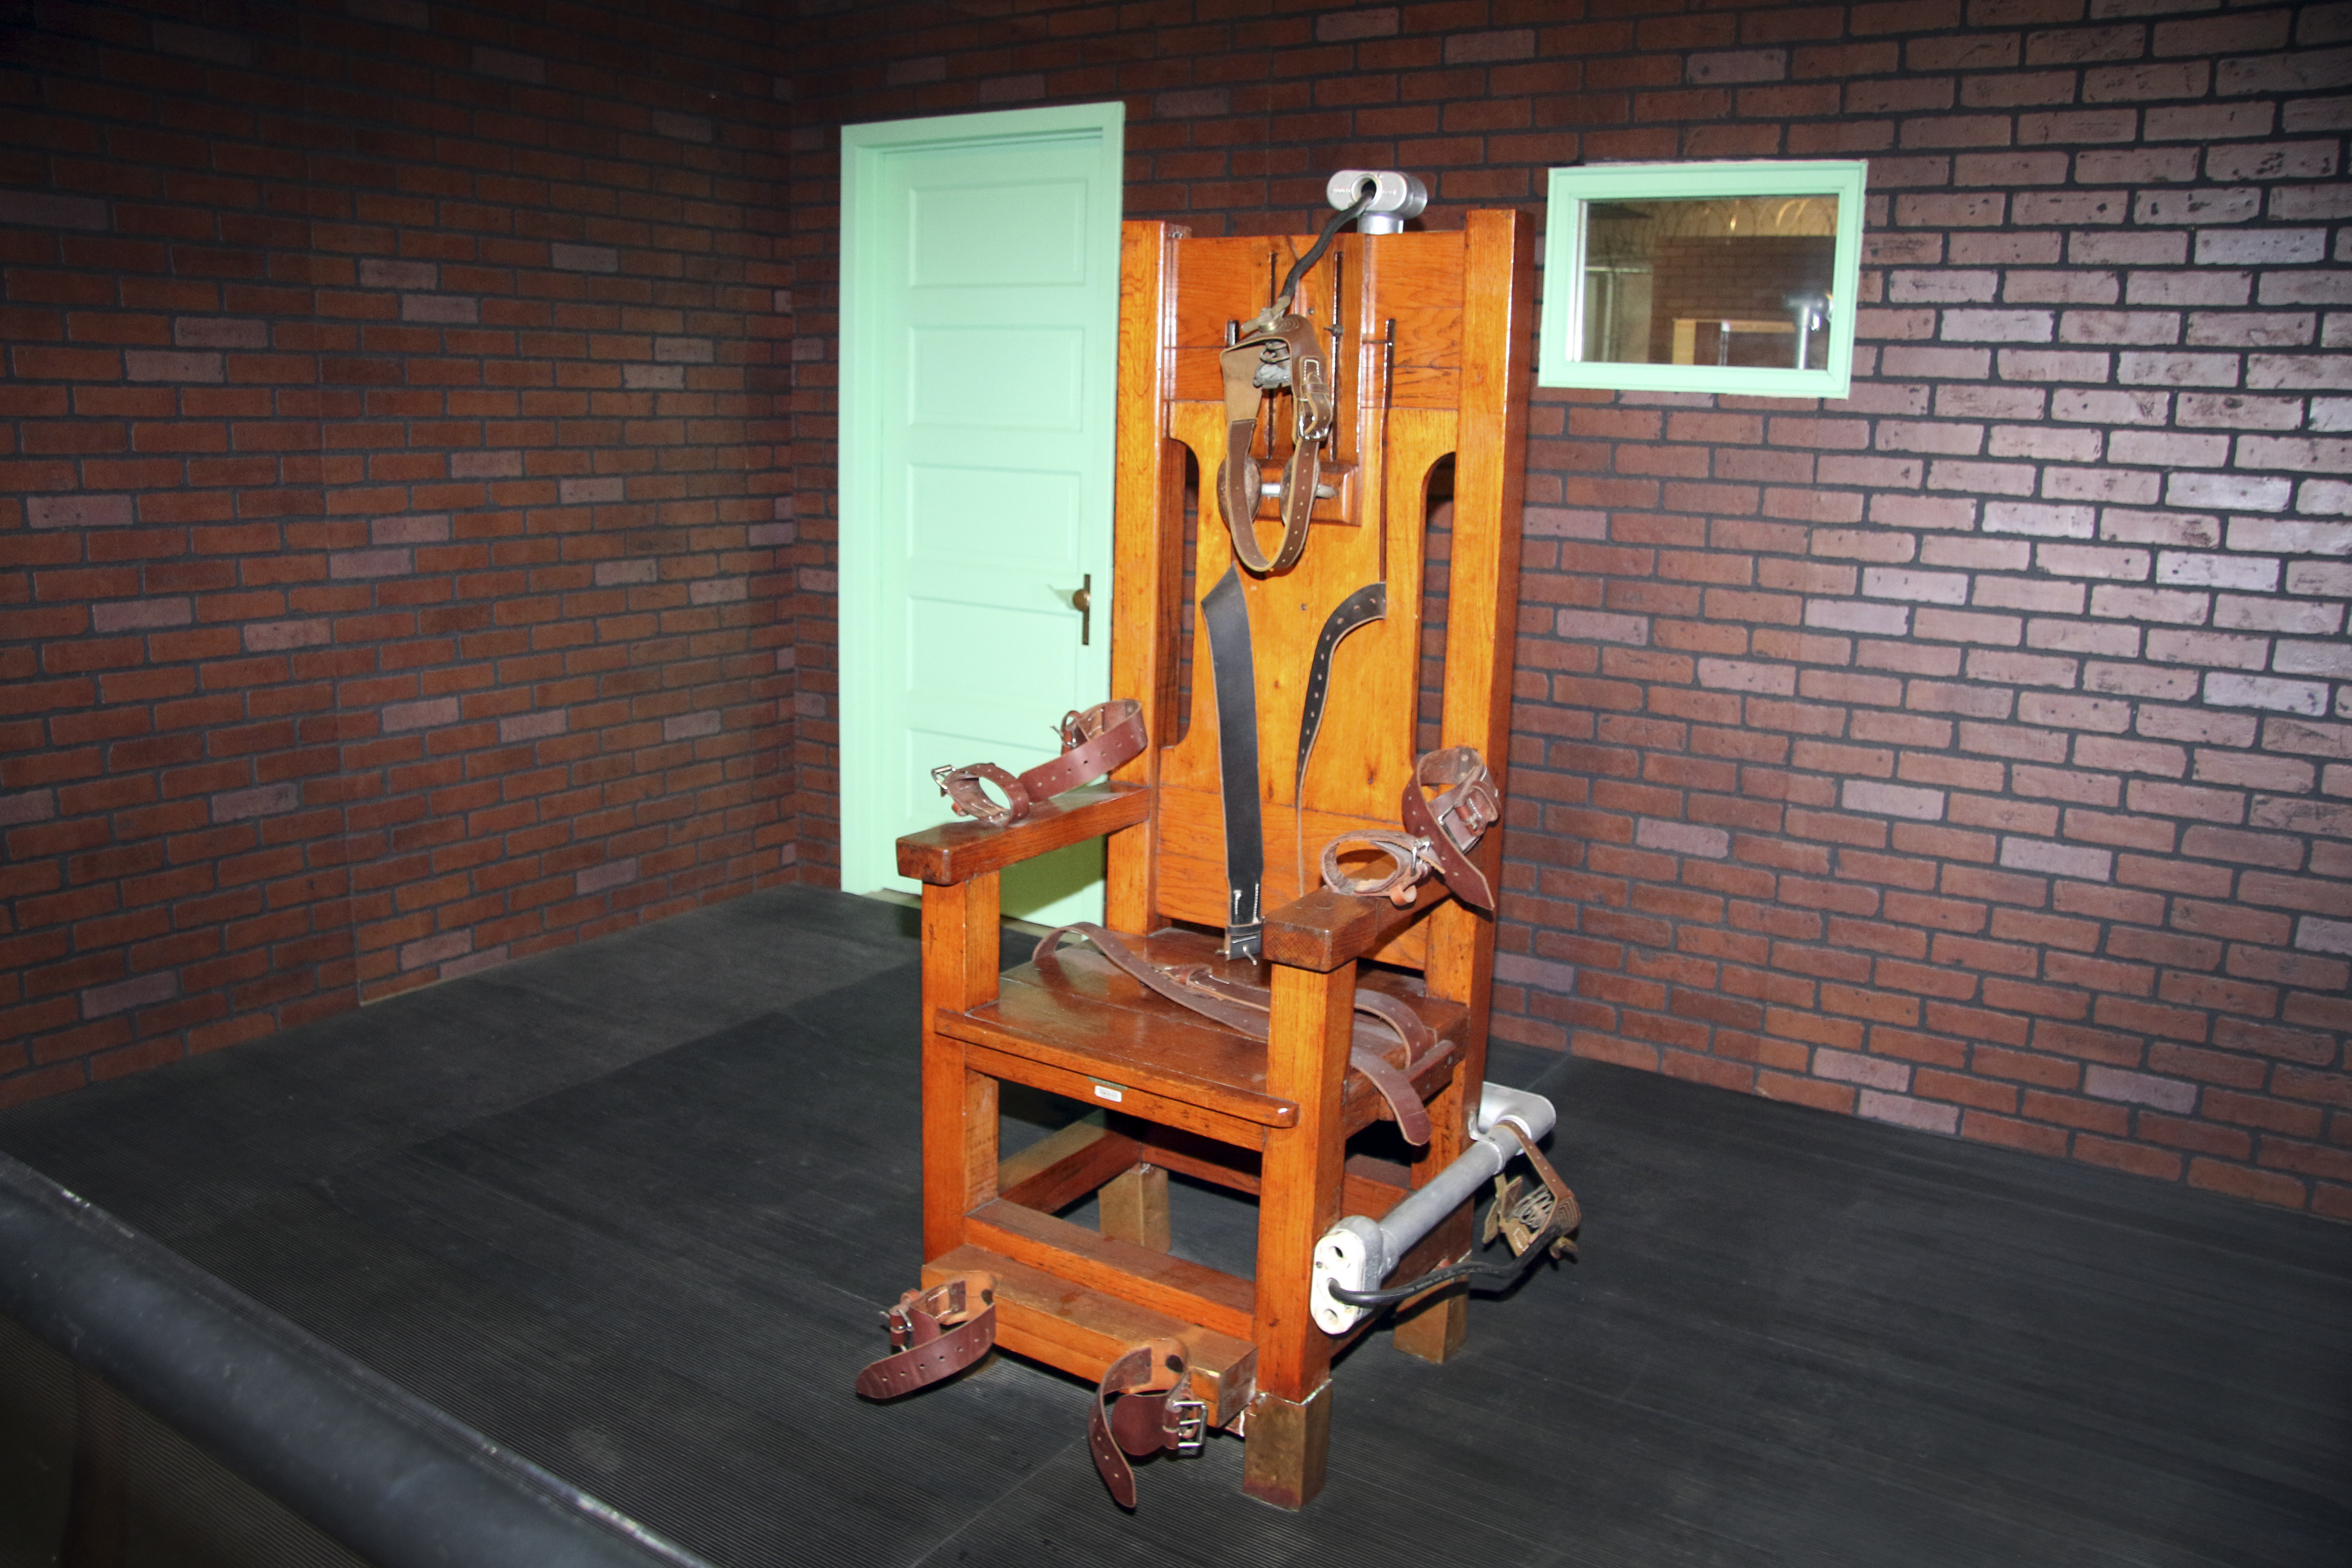 South Carolina wants to start executing people with the electric chair again & South Carolina wants to start executing people with the electric ...